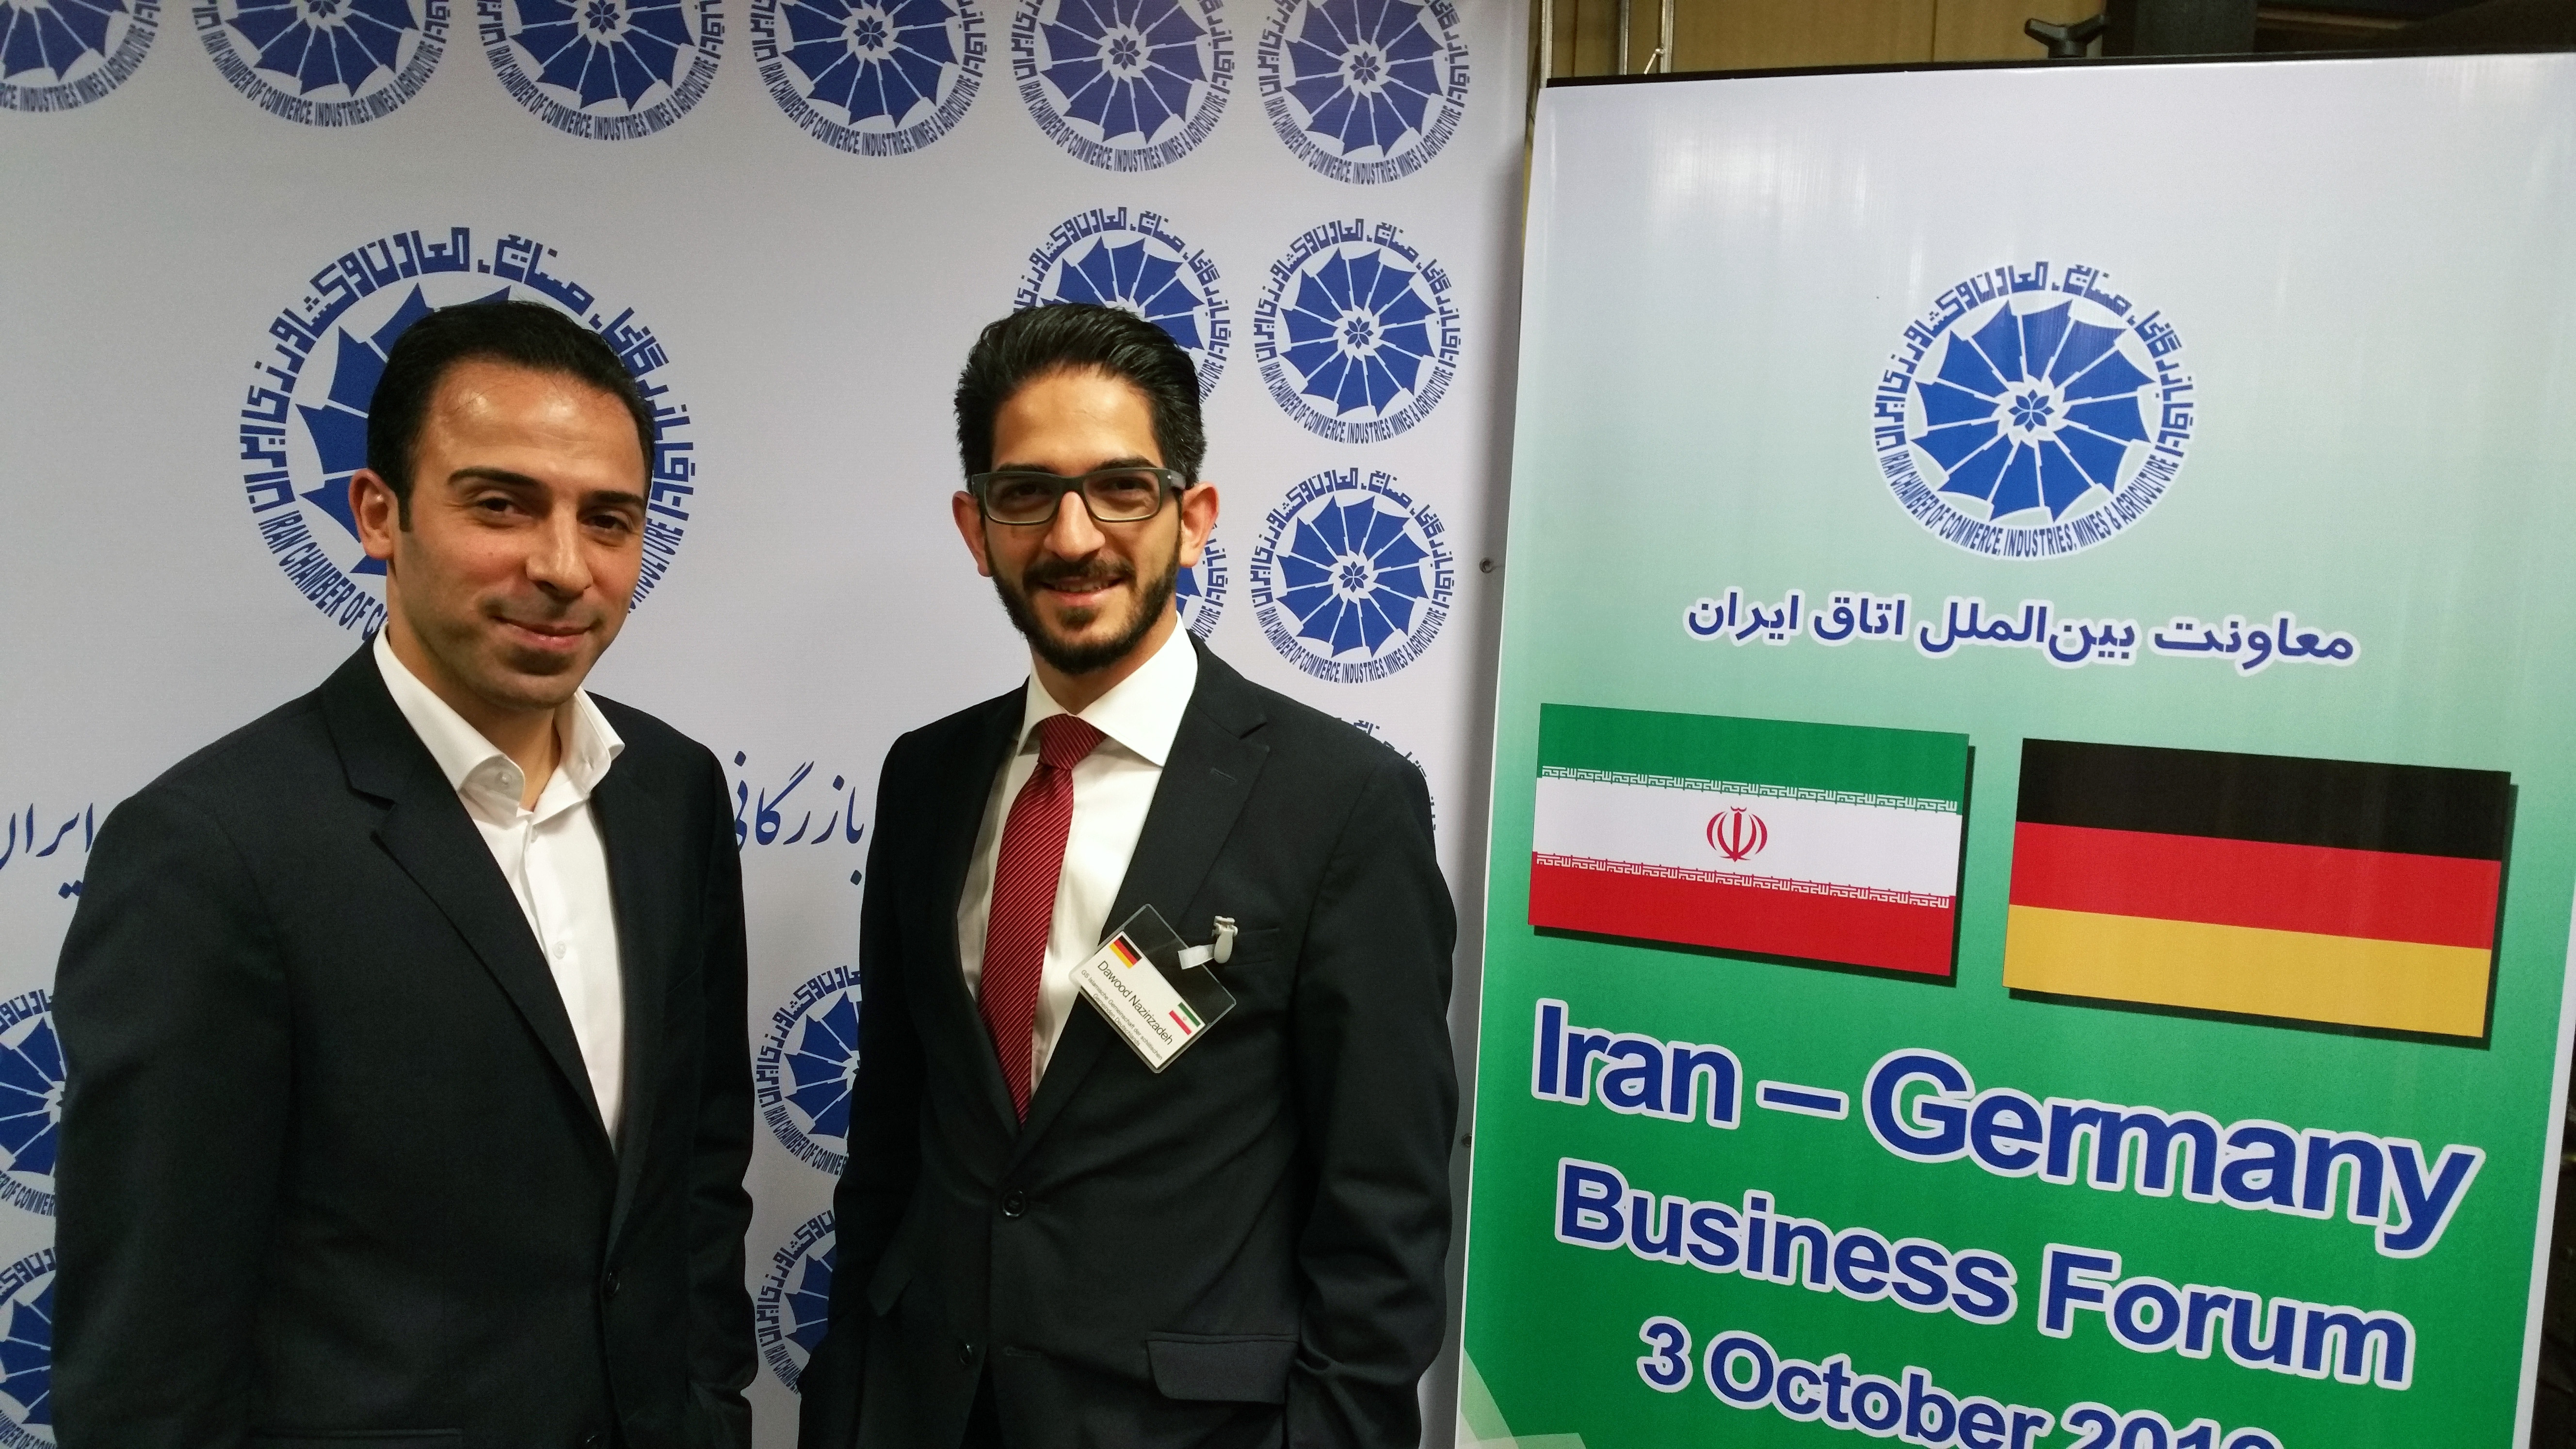 Business Forum in Teheran